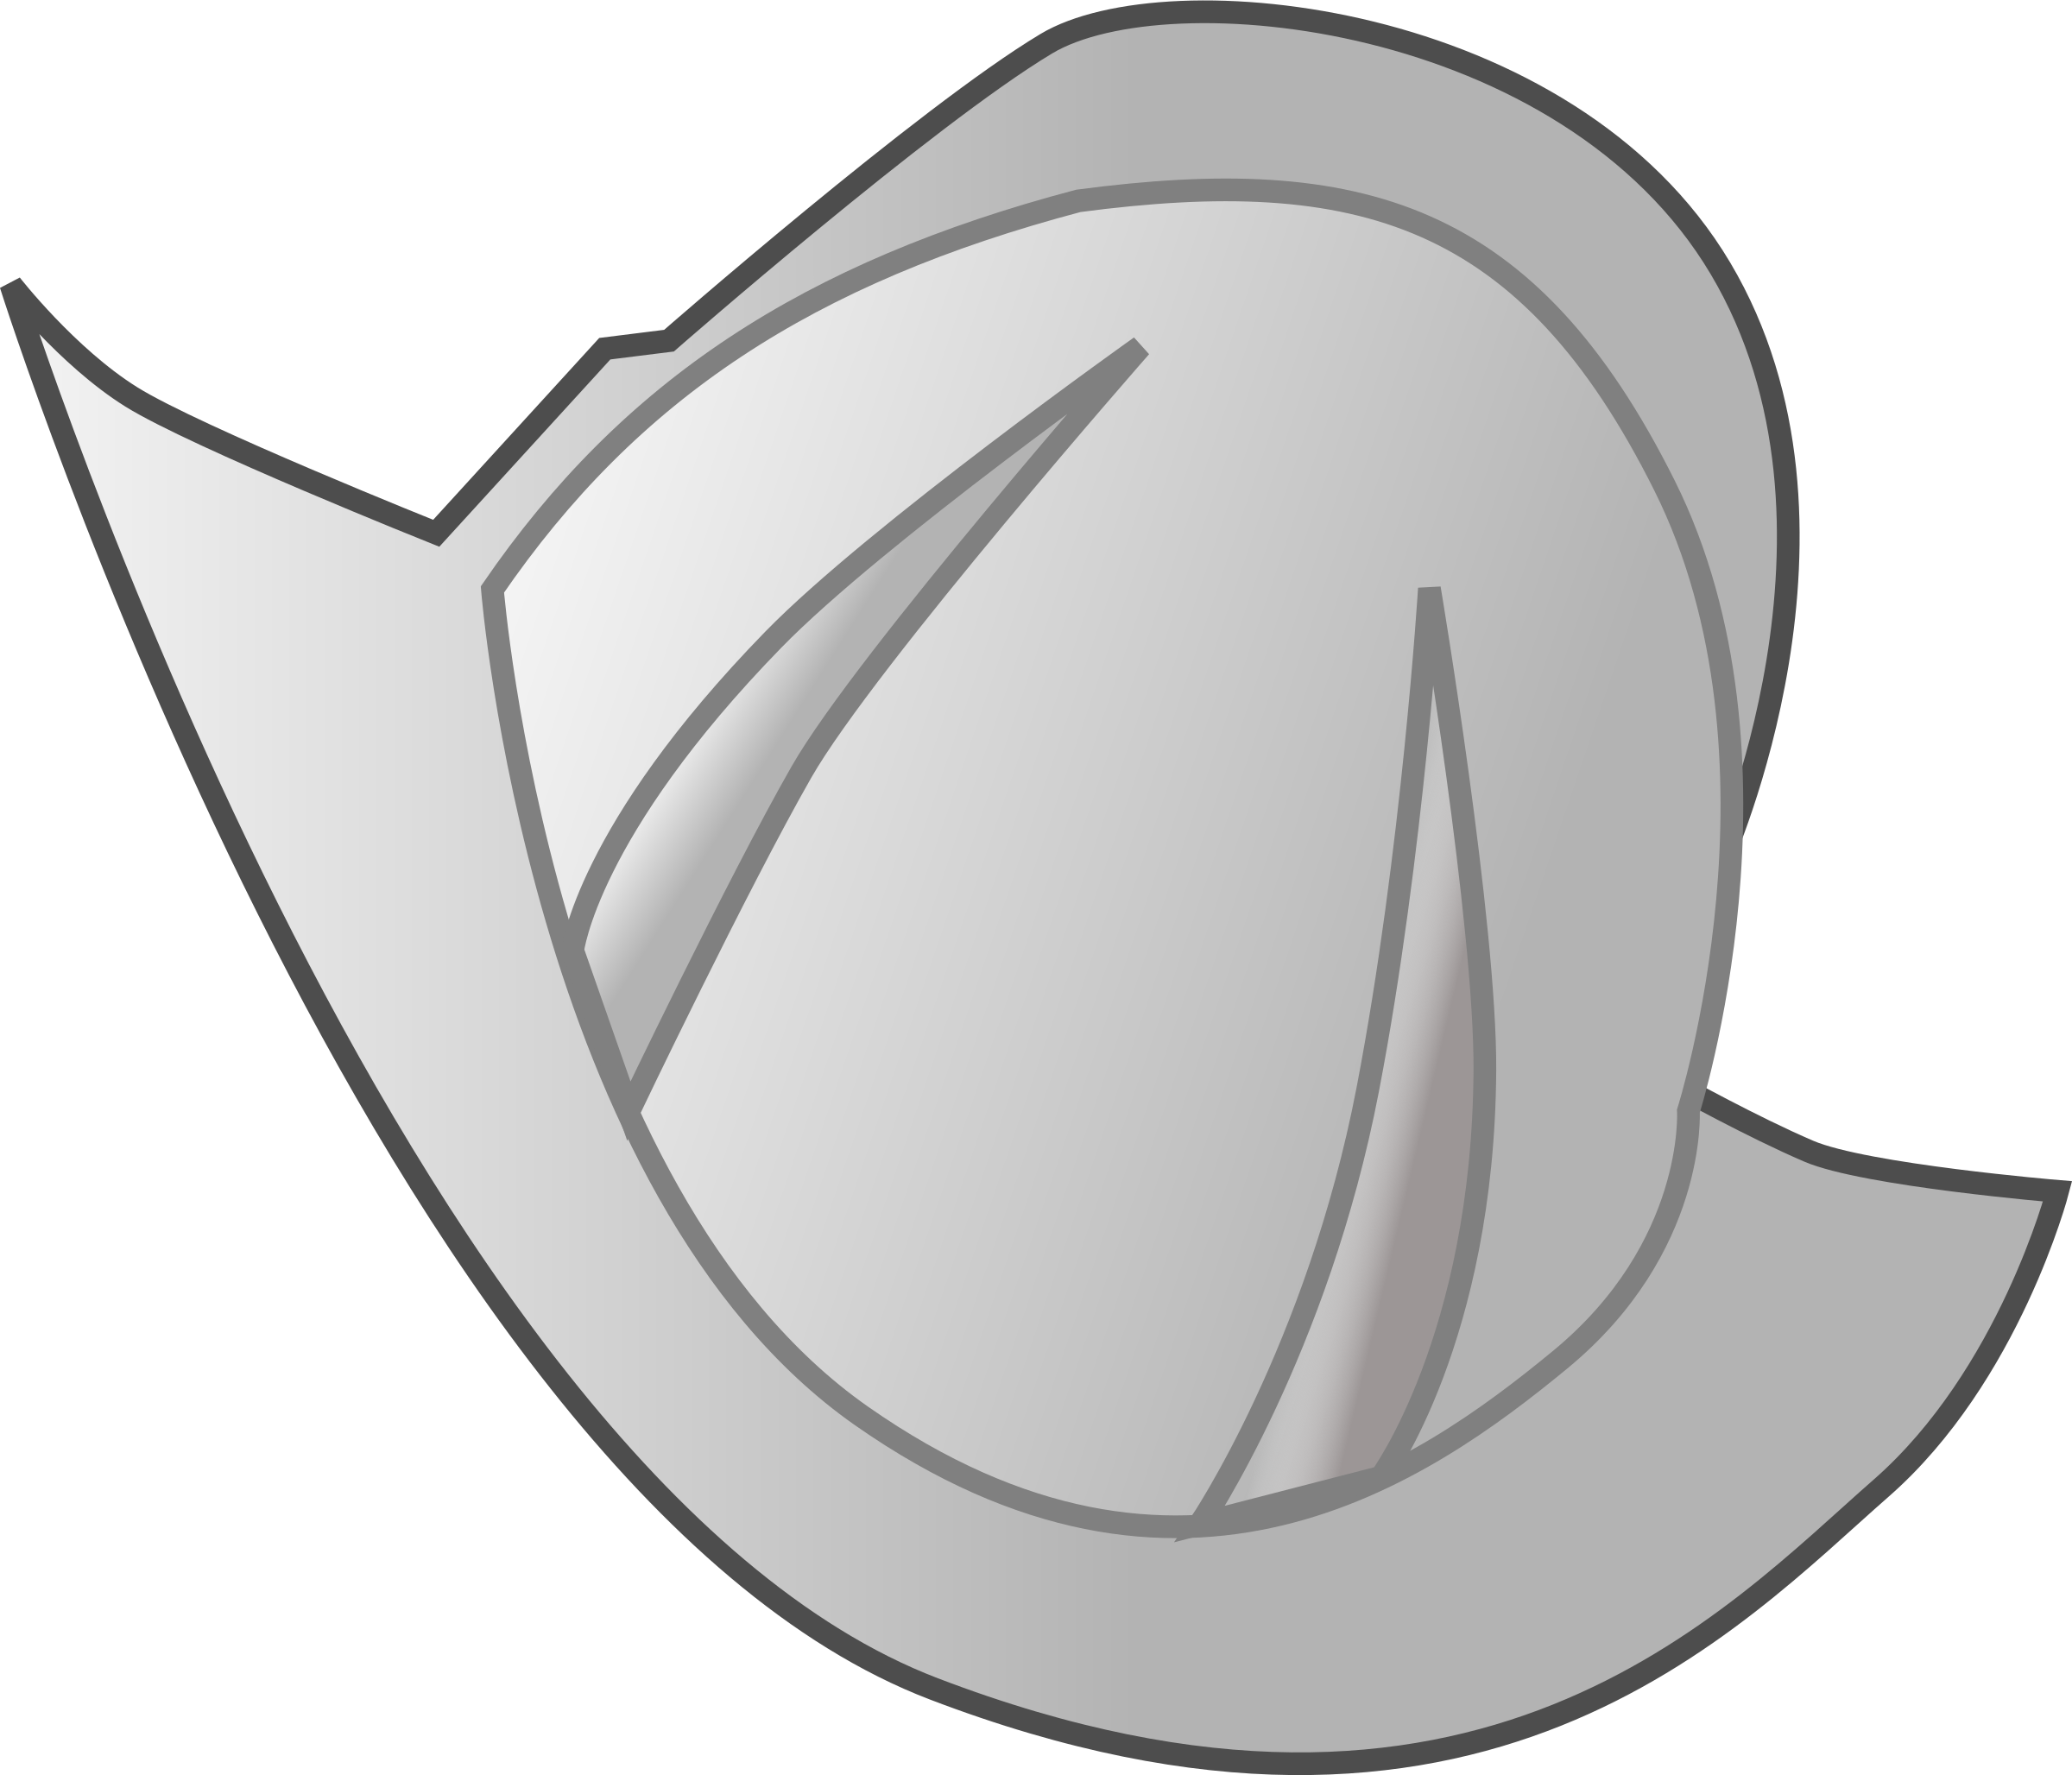 HD This Free Icons Png Design Of Simple Conqueror's Helmet.